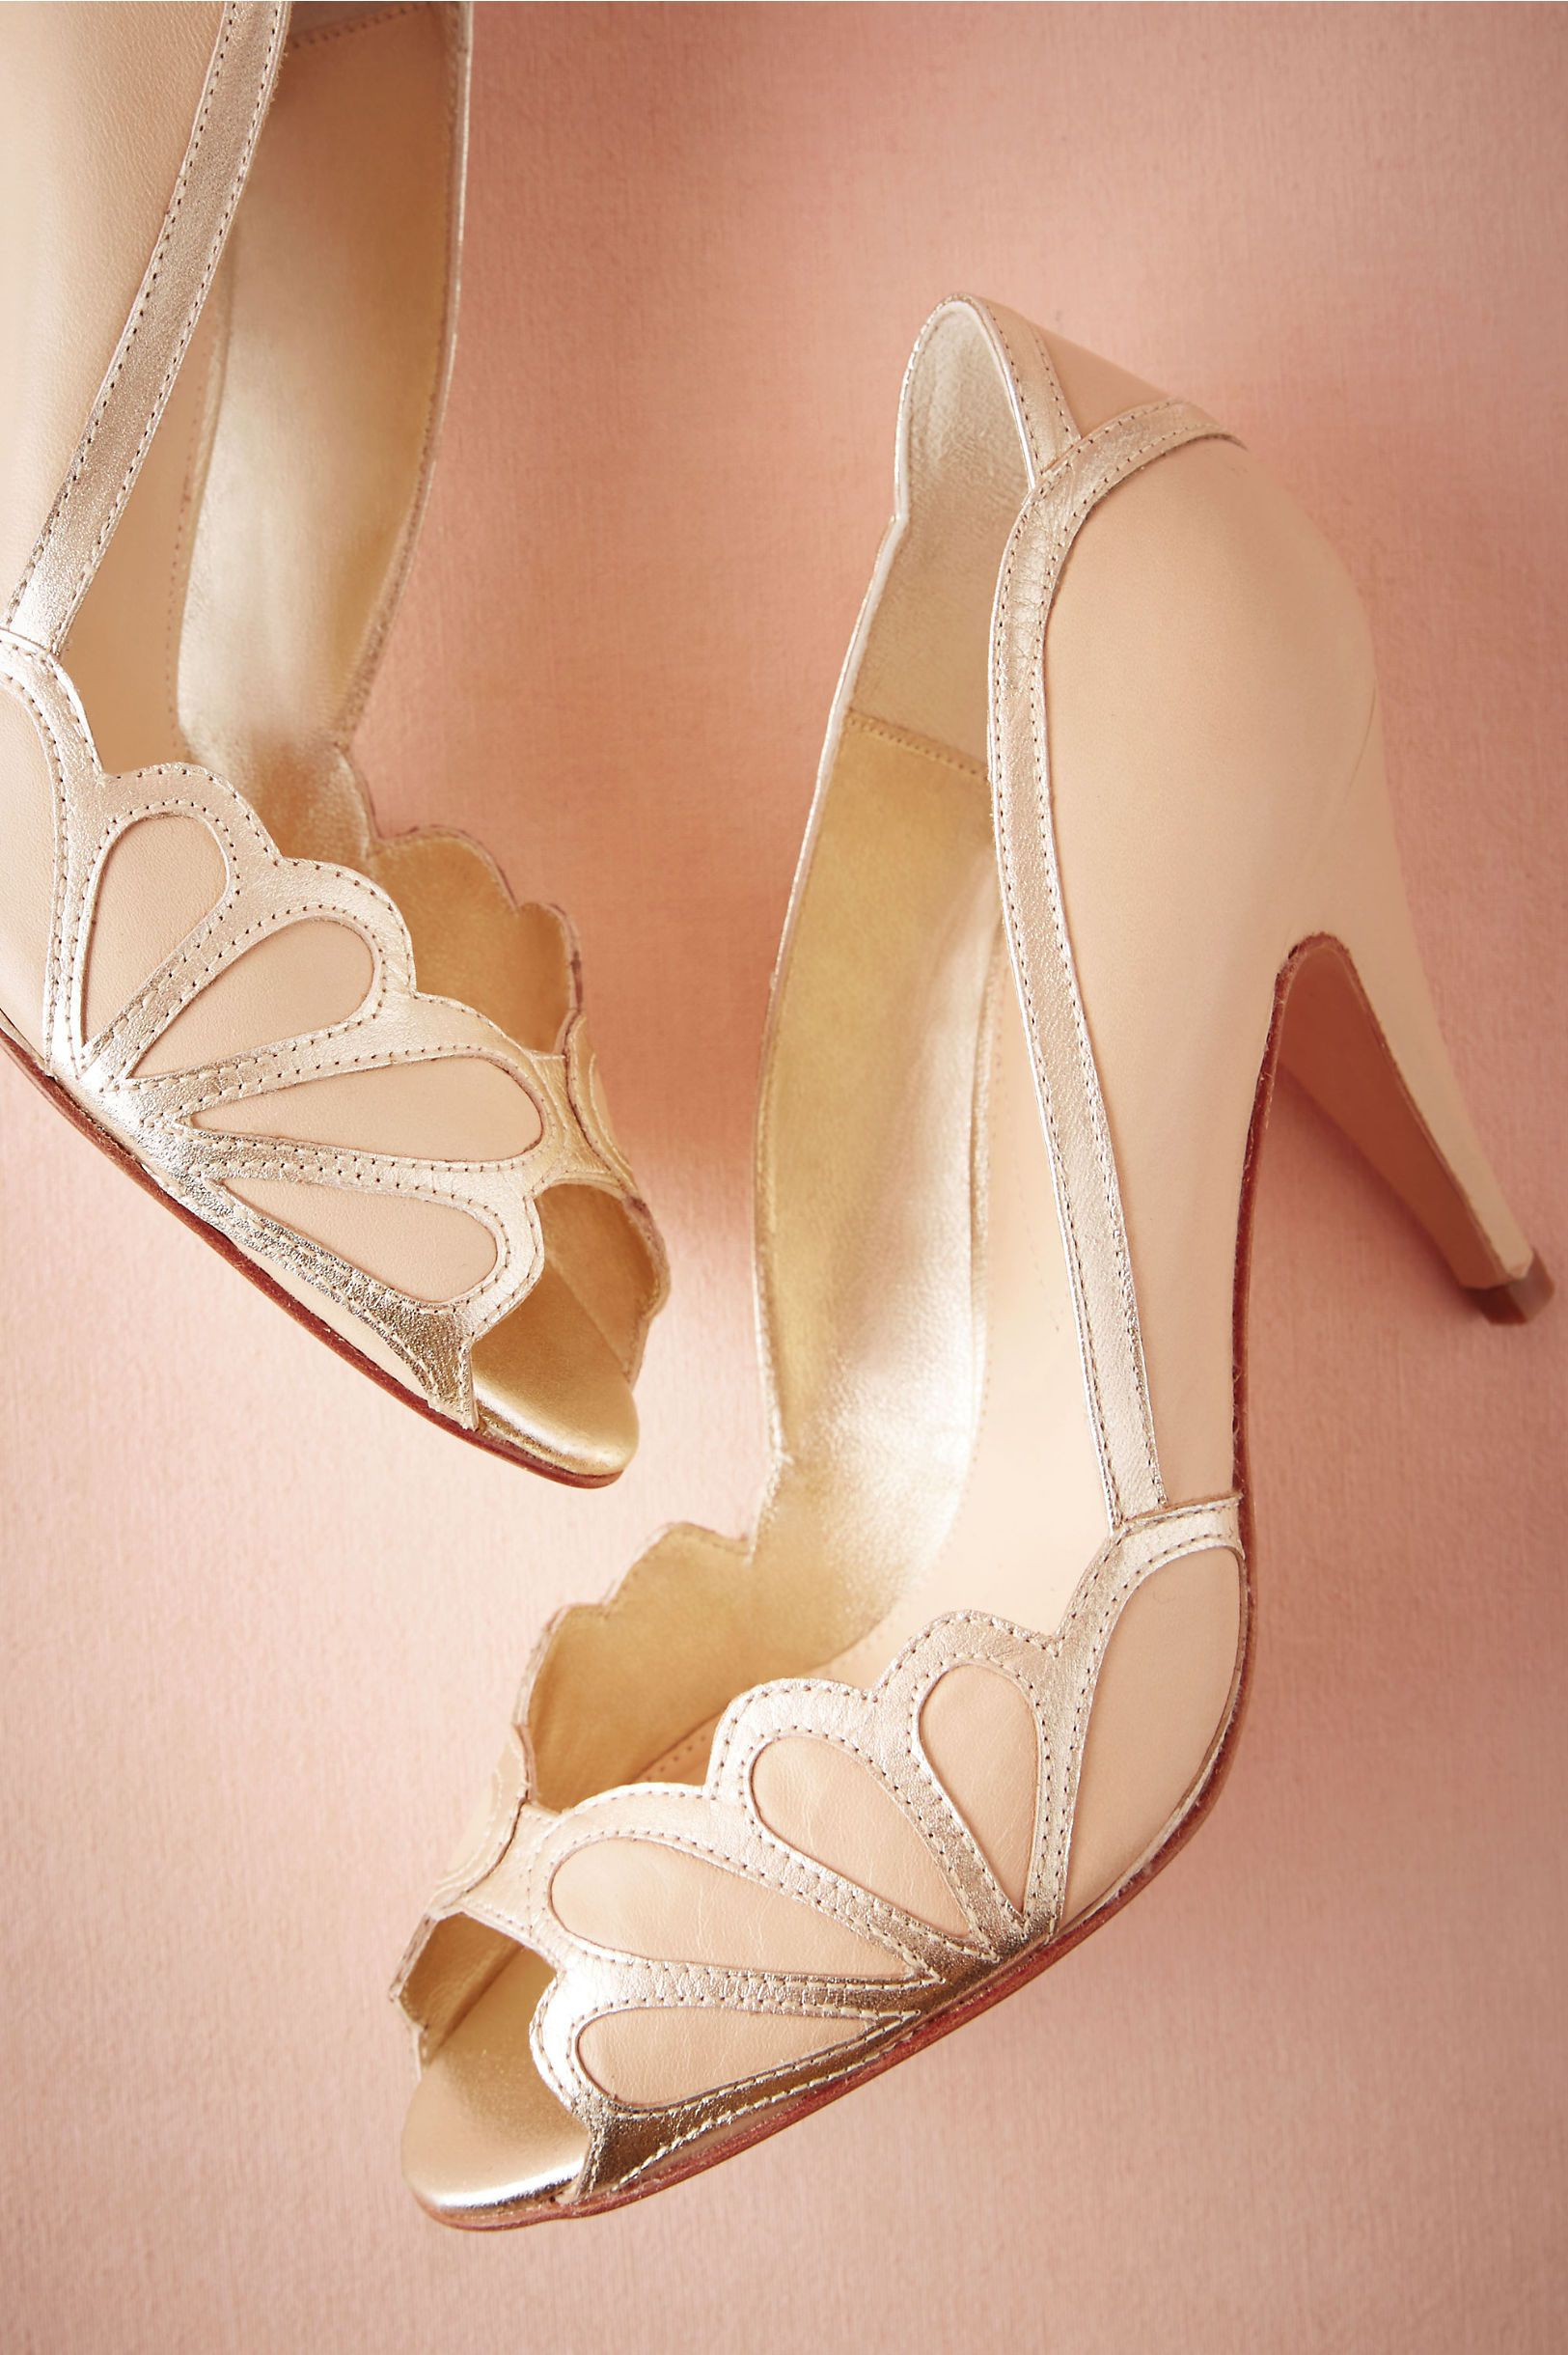 1930s Style Wedding Dresses Shoes Accessories In 2020 Wedding